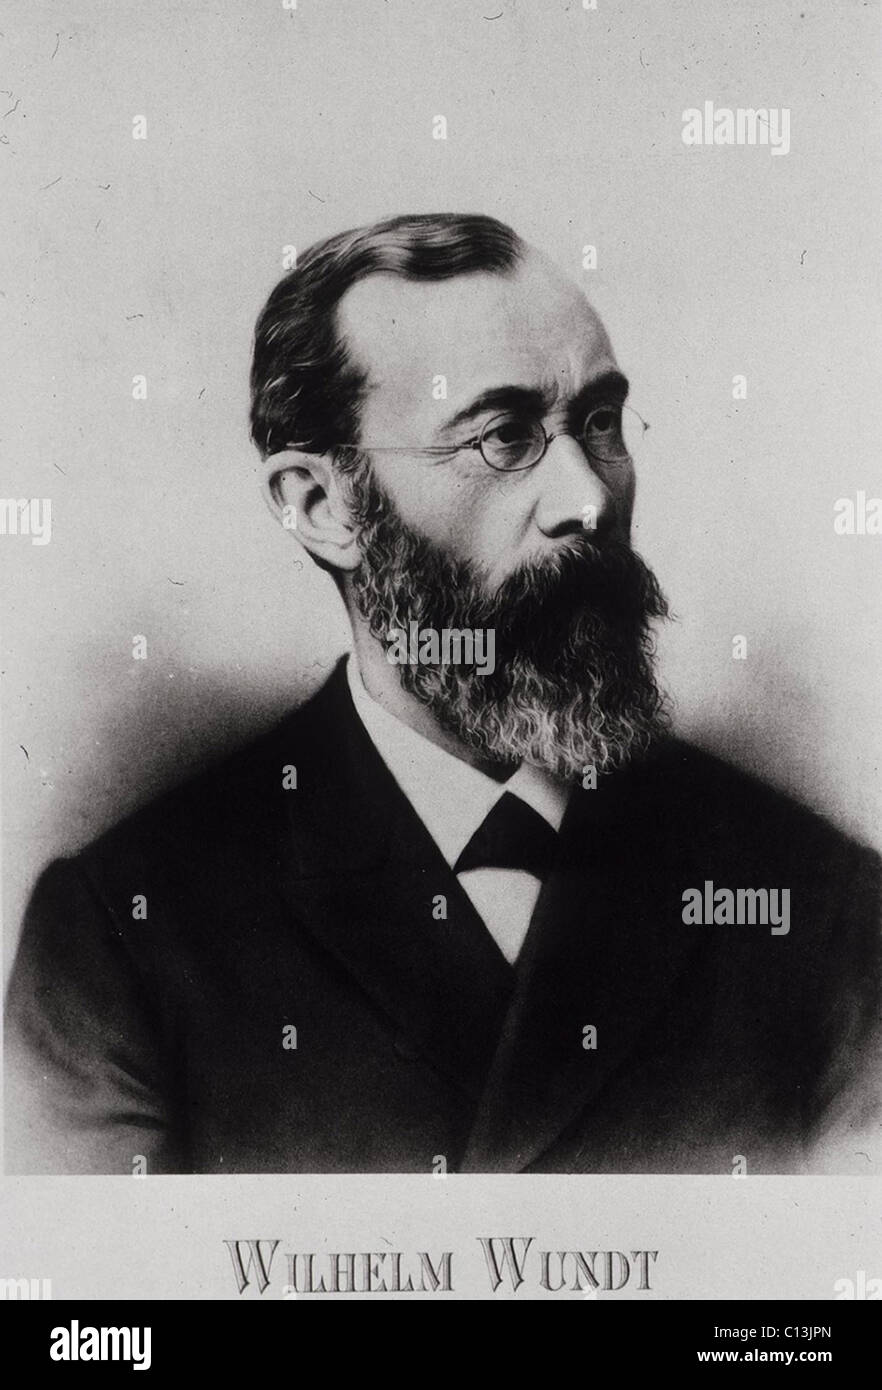 wilhelm wundt psychology